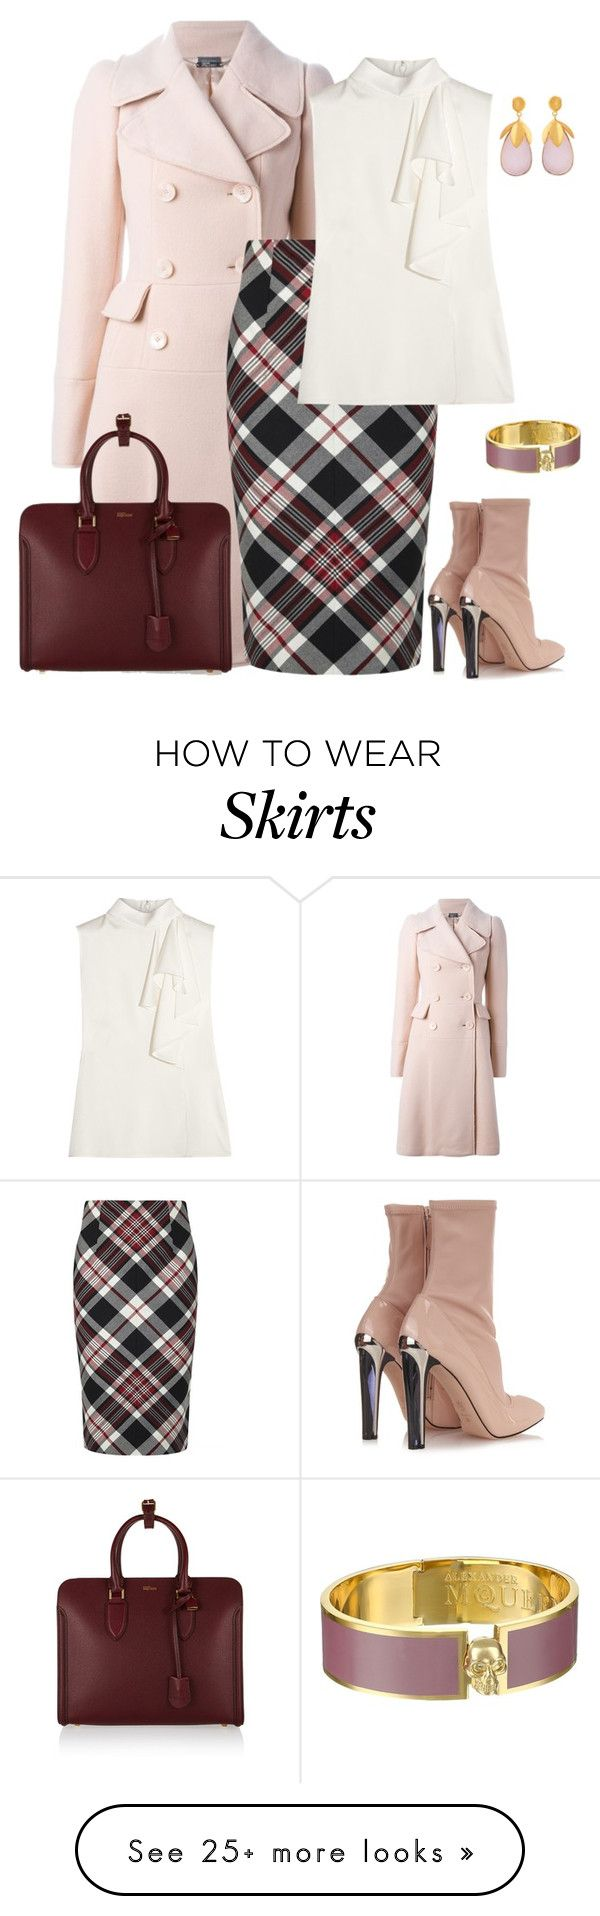 """""""outfit 2815"""" by natalyag on Polyvore featuring Alexander McQueen and Kastur Jewels"""